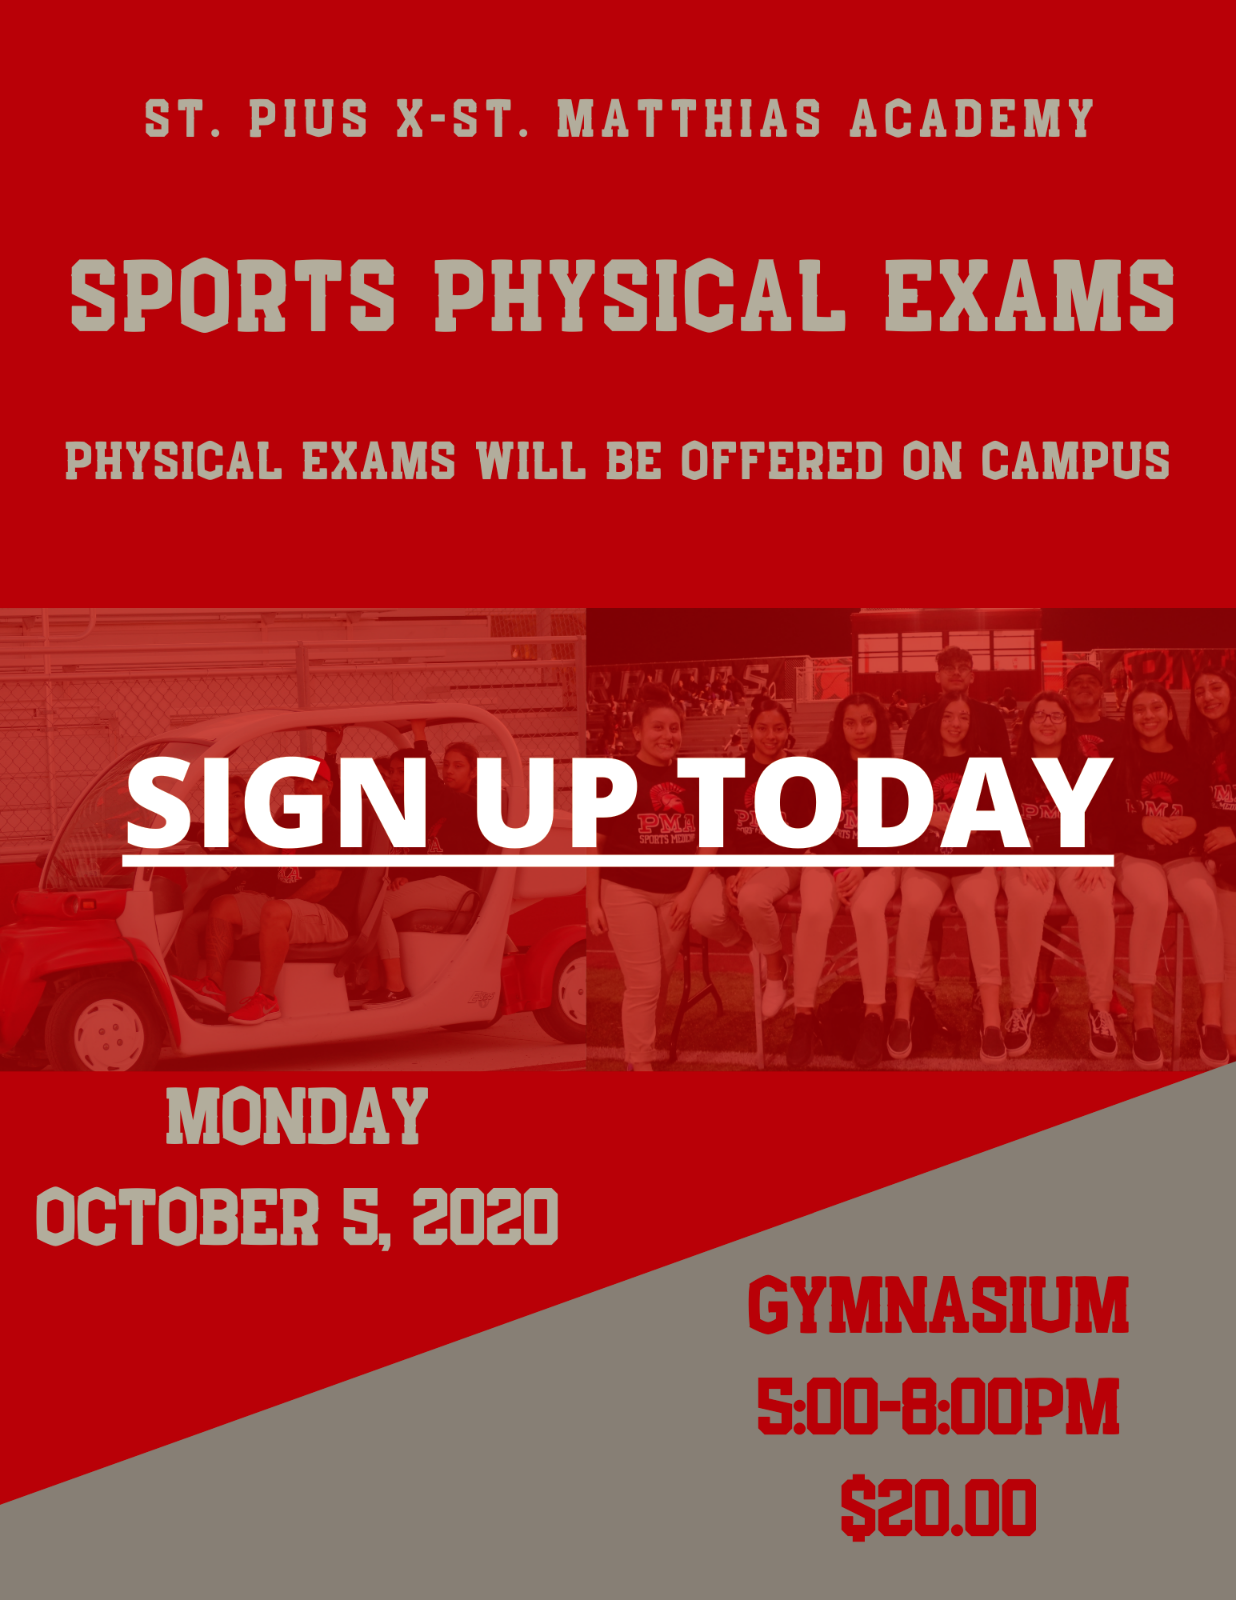 Physical Exams on Campus